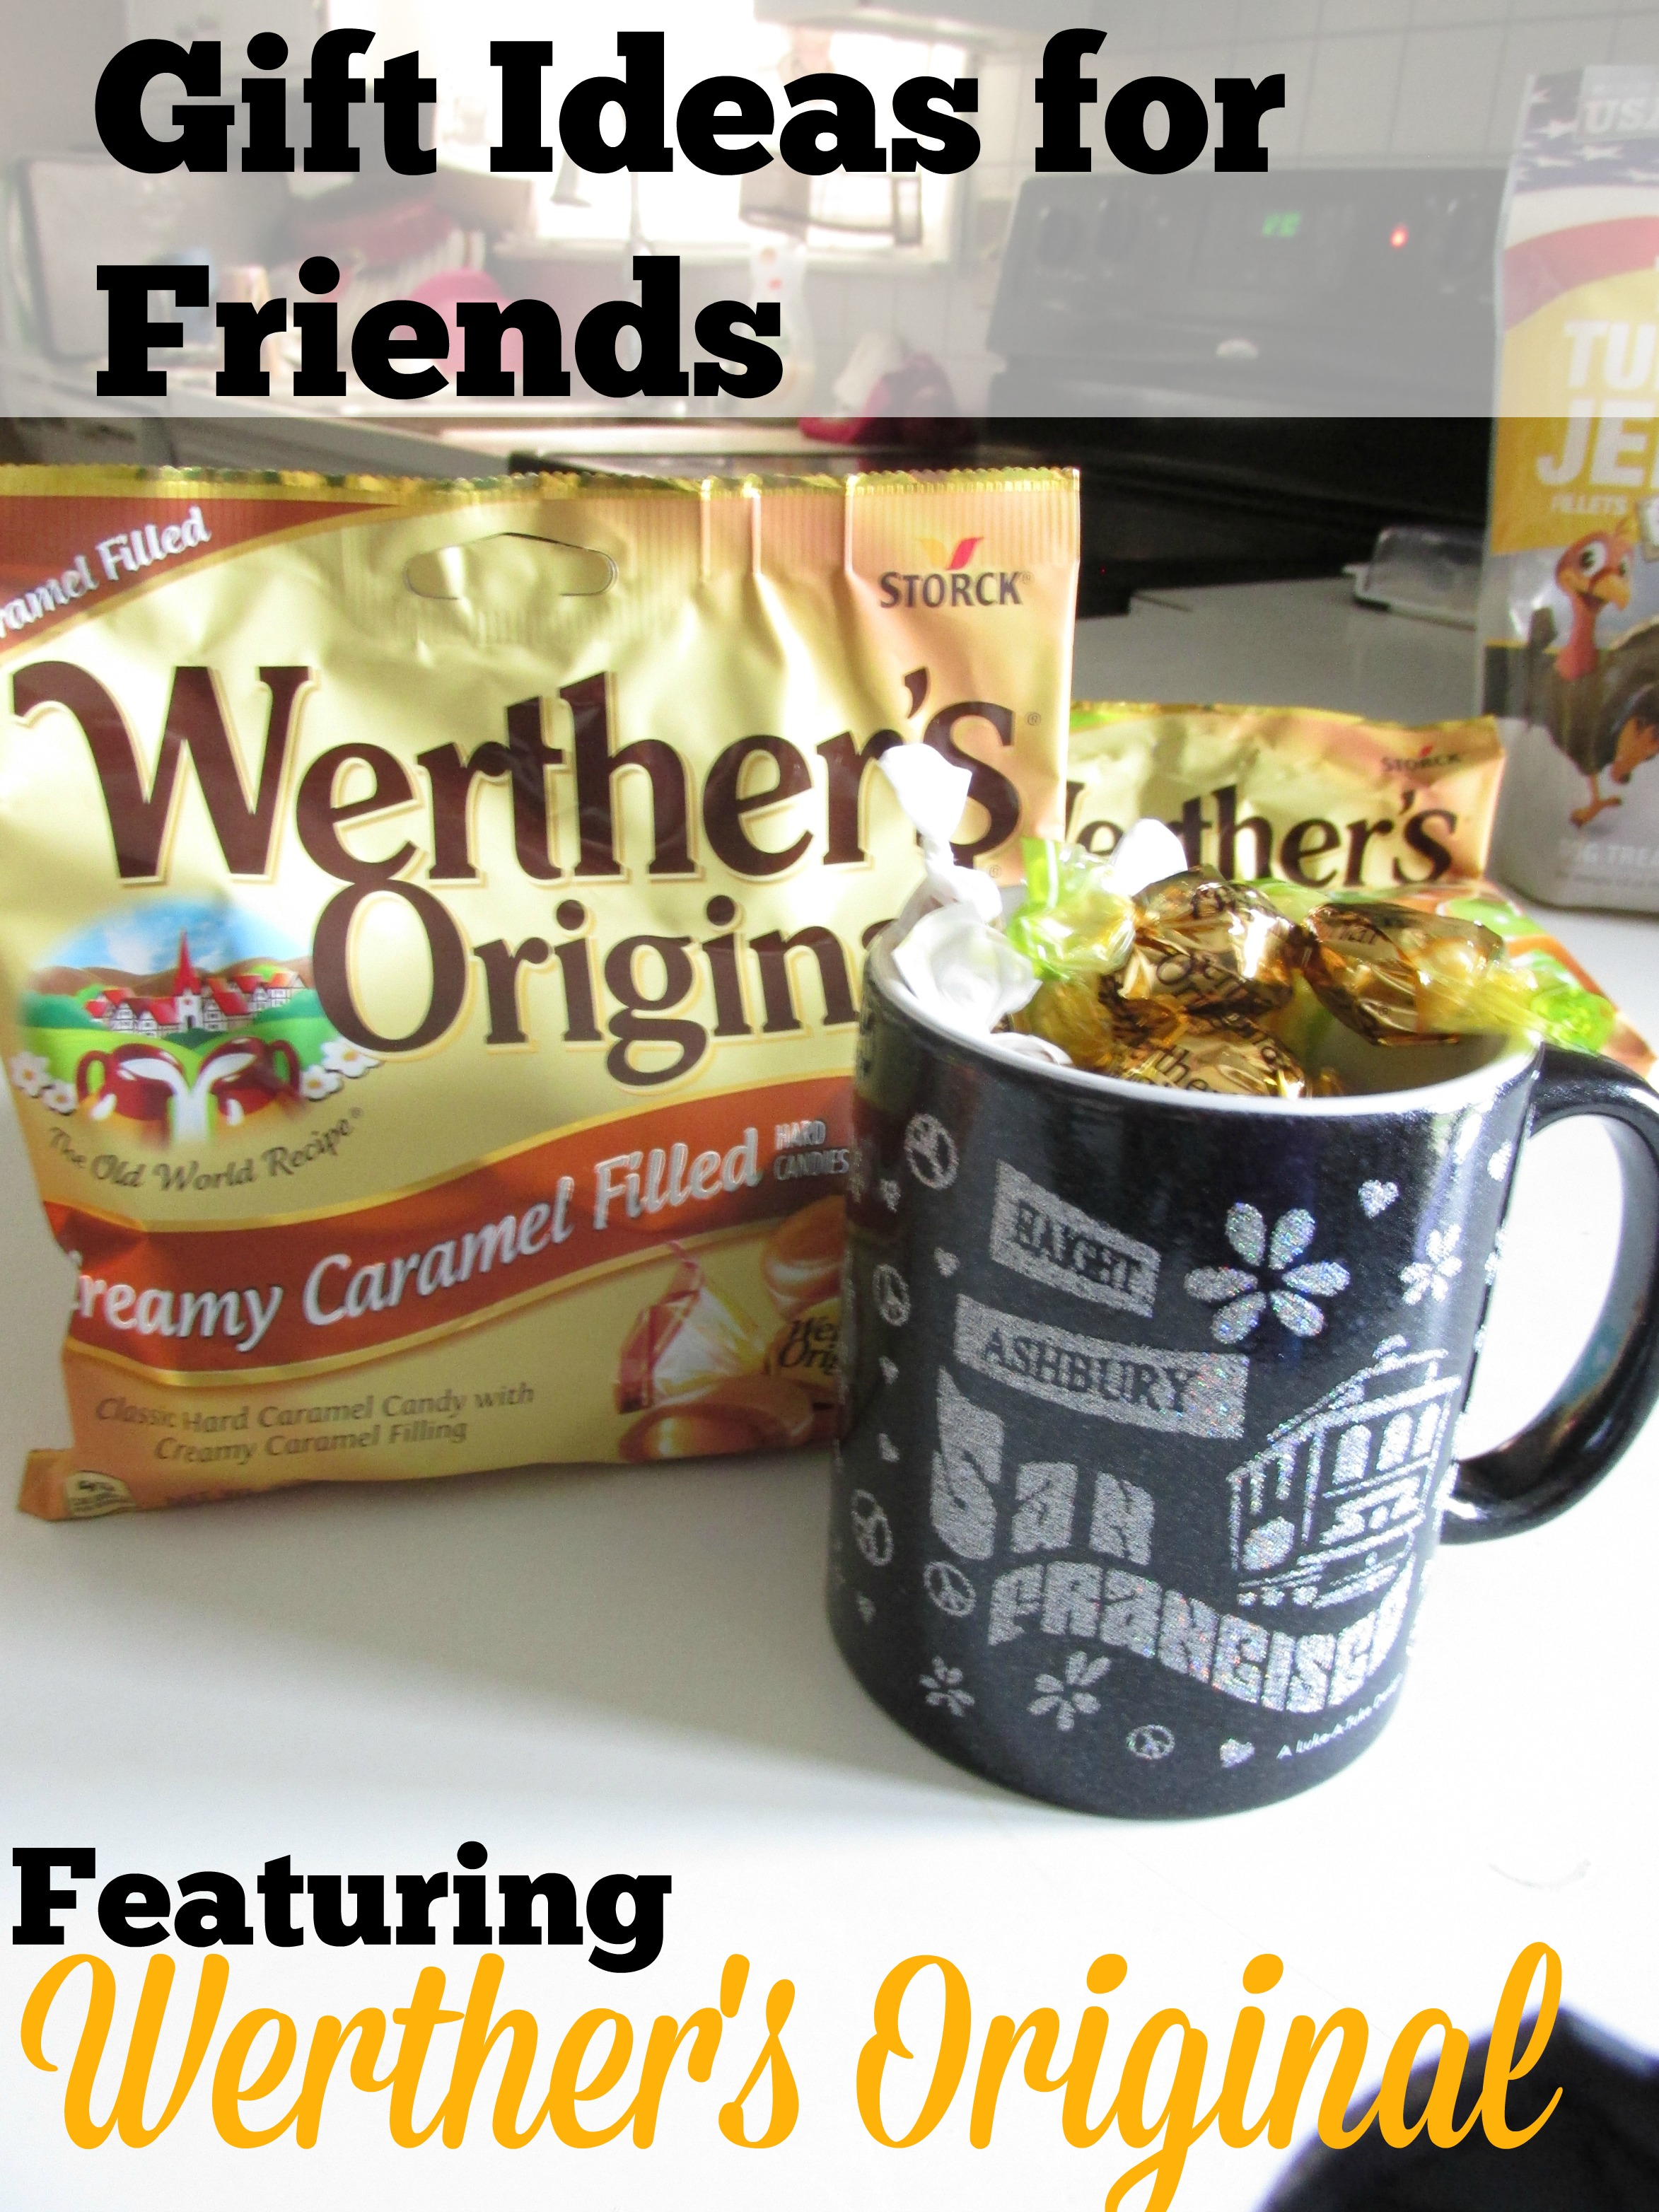 Fun Filled Gifts for Friends Featuring Werther's Originals